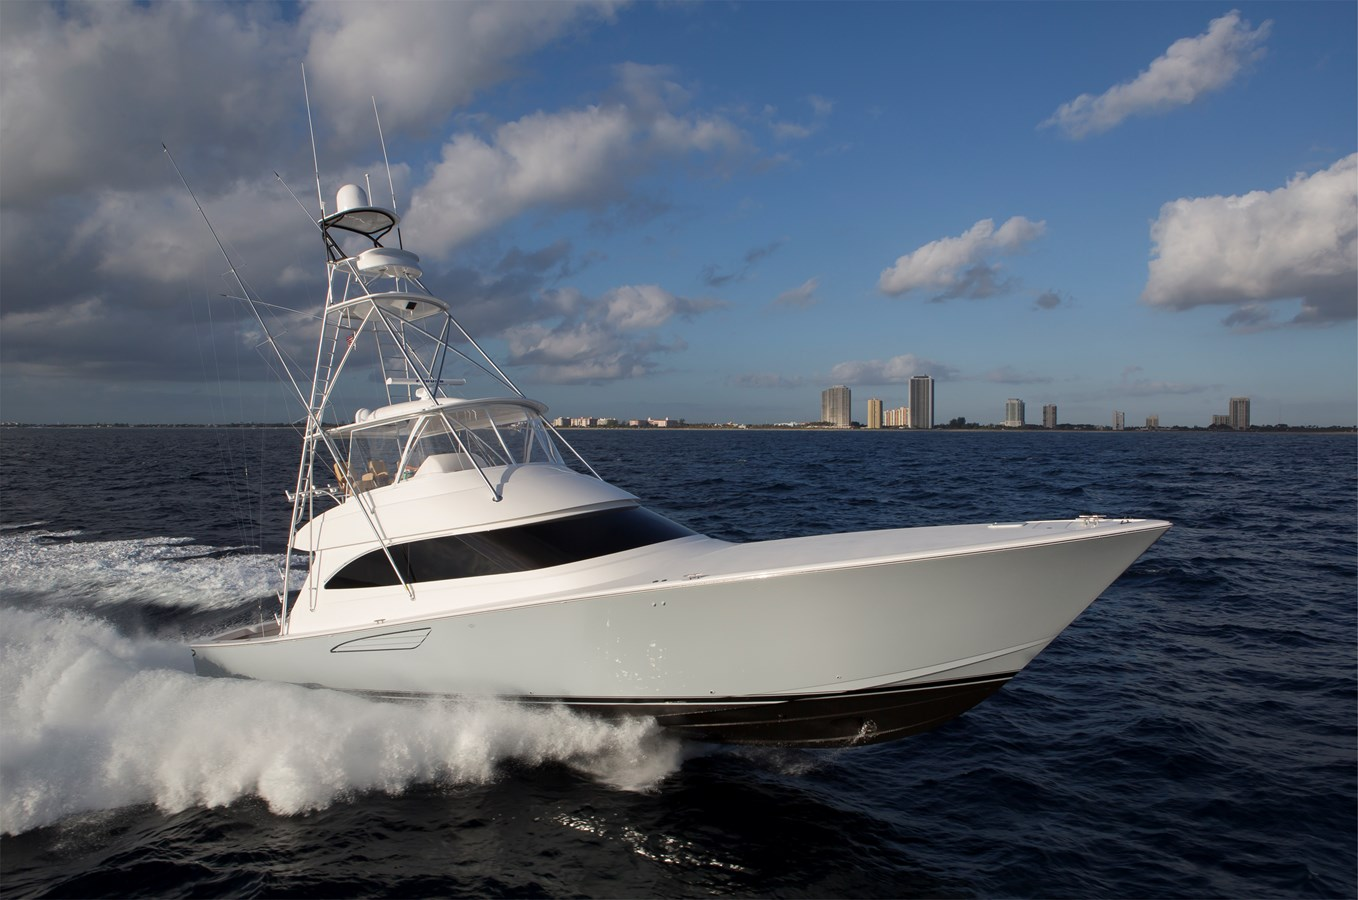 2018 VIKING 62 Convertible (VK62-050) For Sale